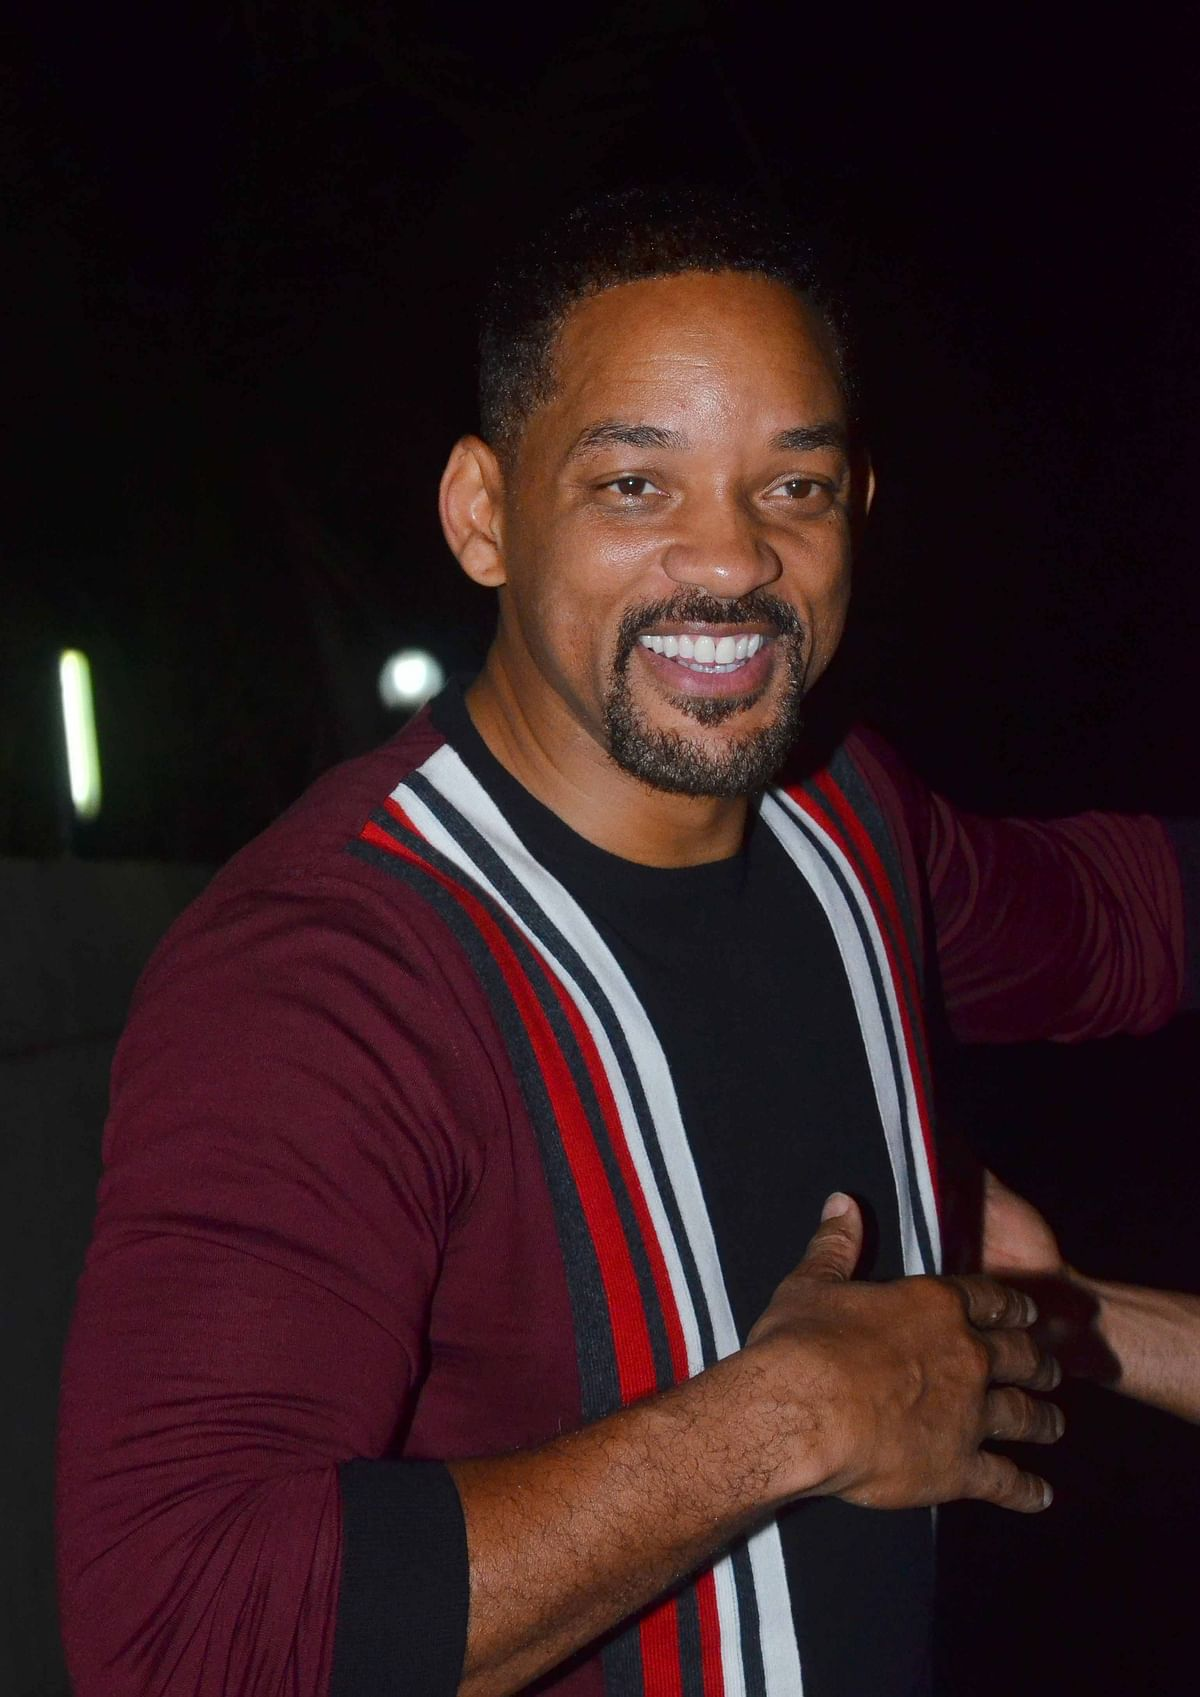 Will Smith smiles for the camera. (Photo: Yogen Shah)